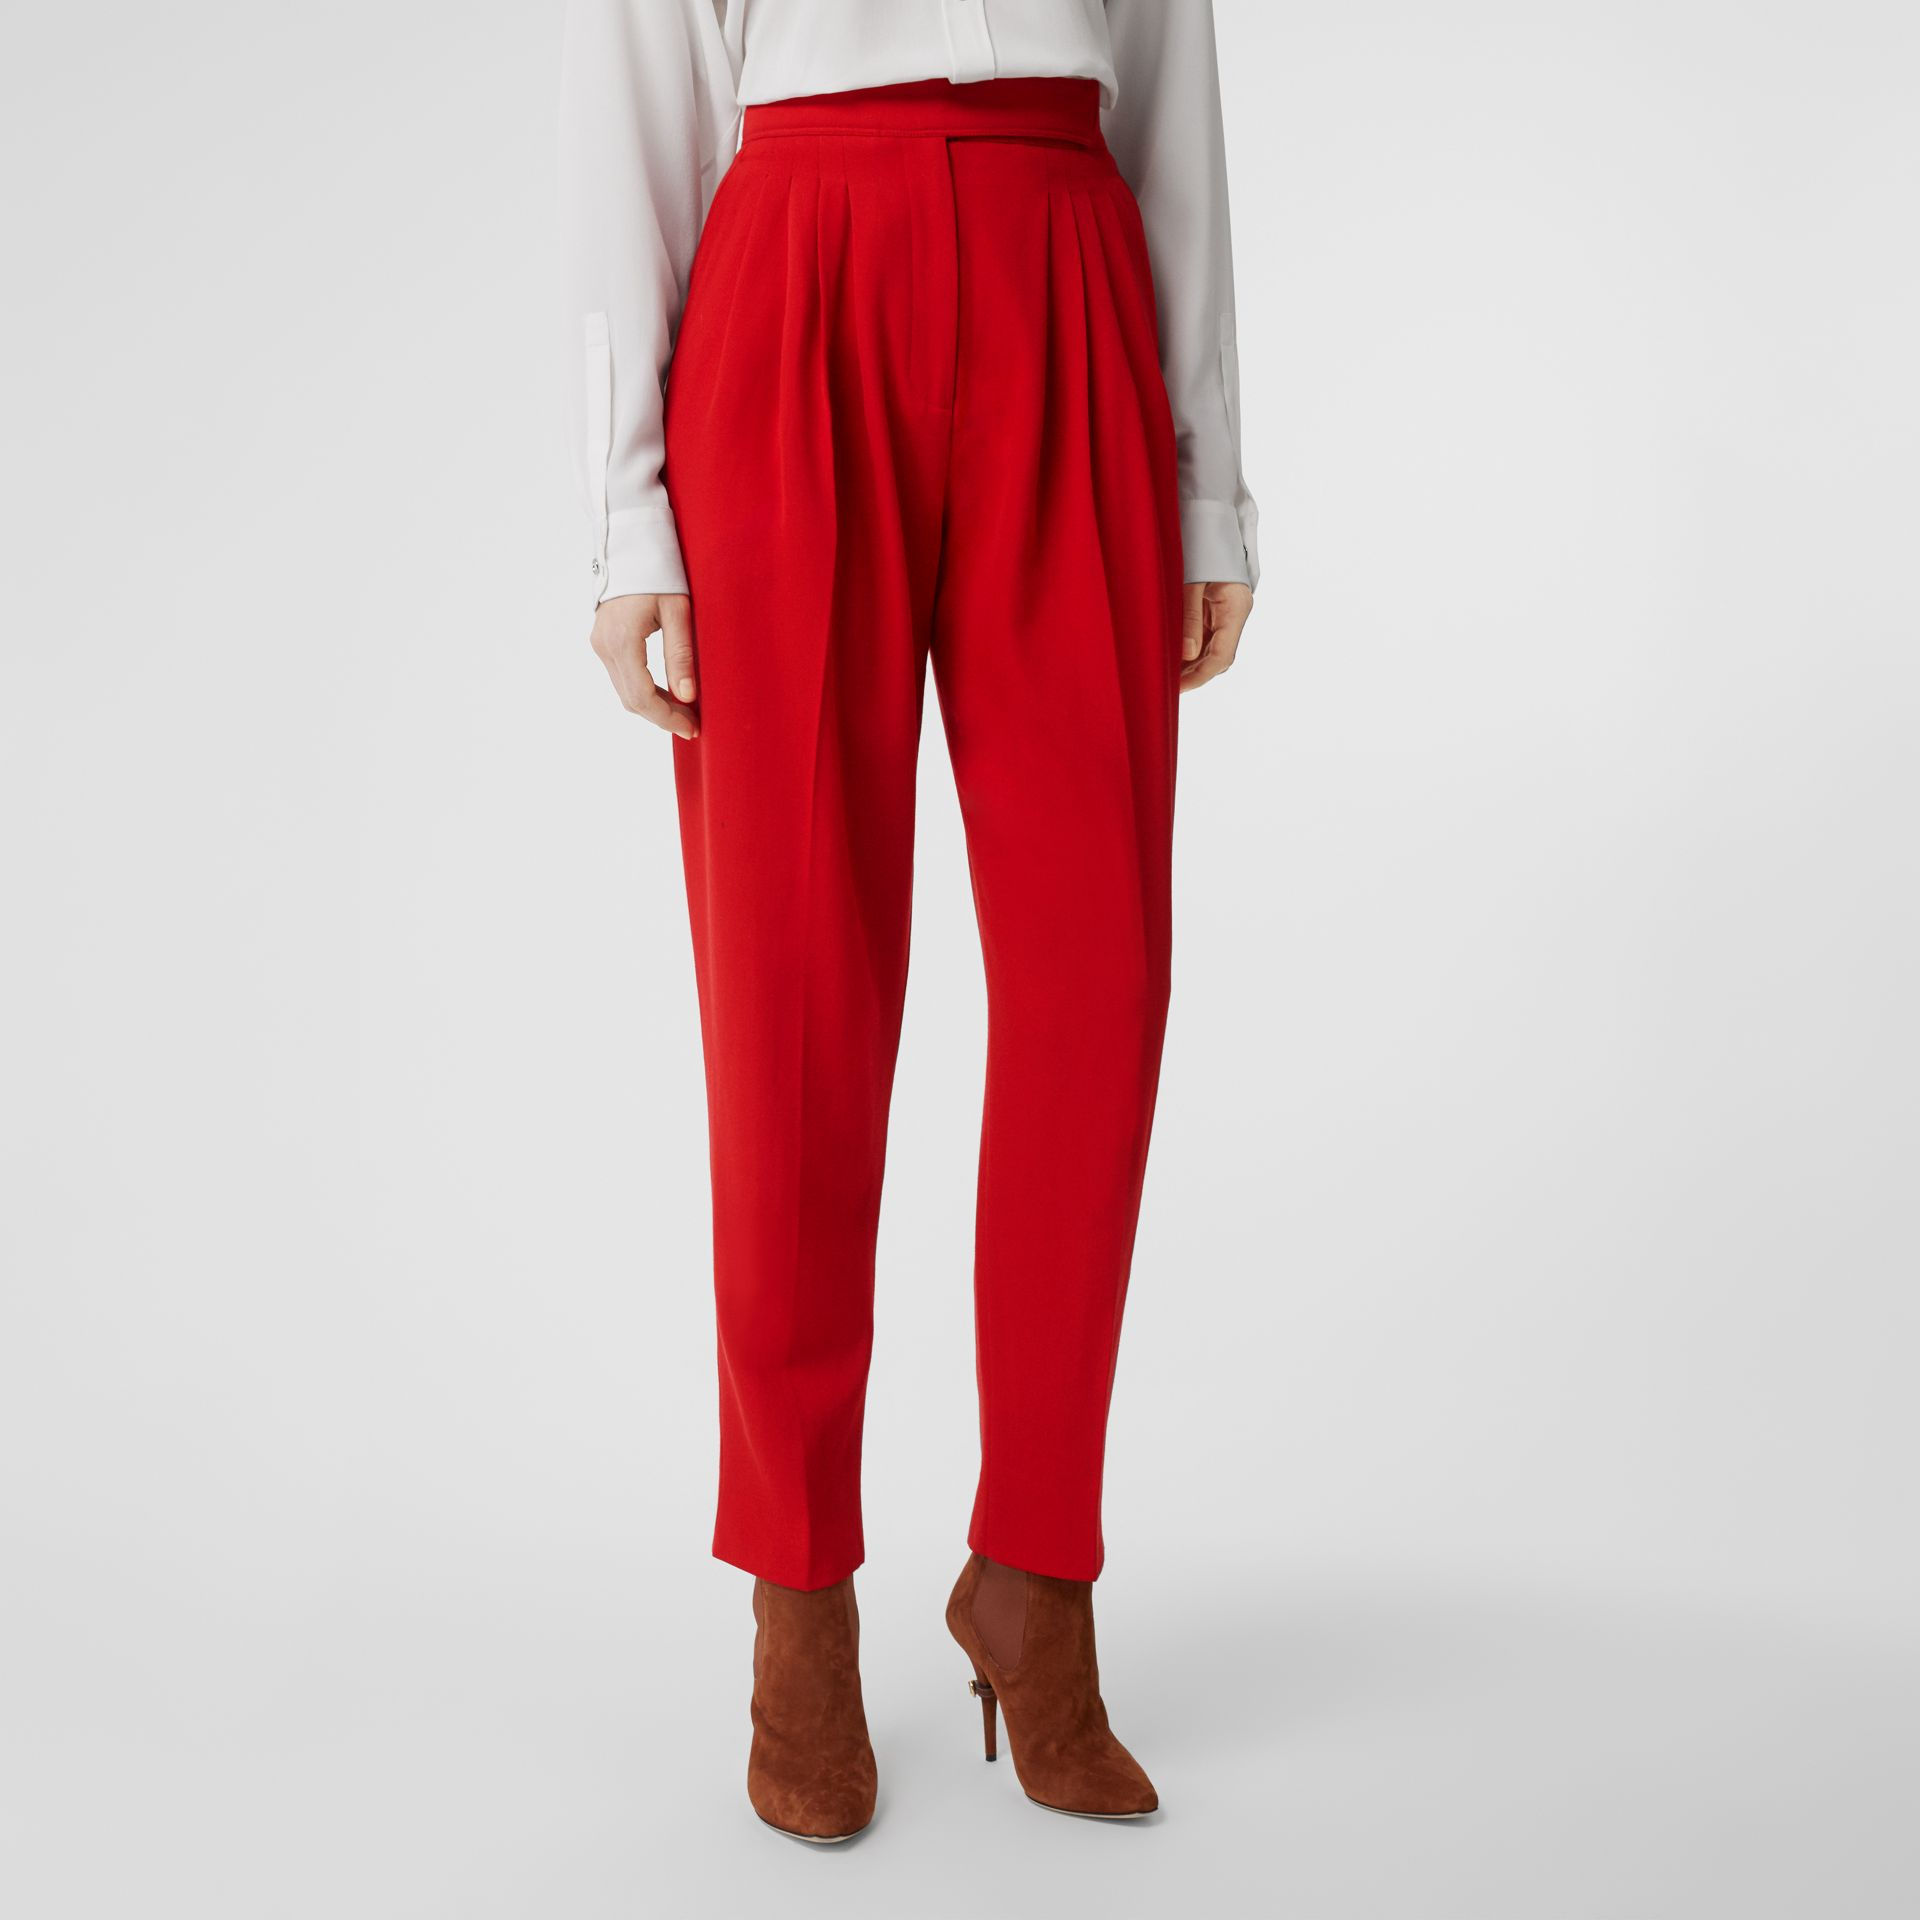 Pleat Detail Wool Tailored Trousers in Bright Red - Women | Burberry - gallery image 4